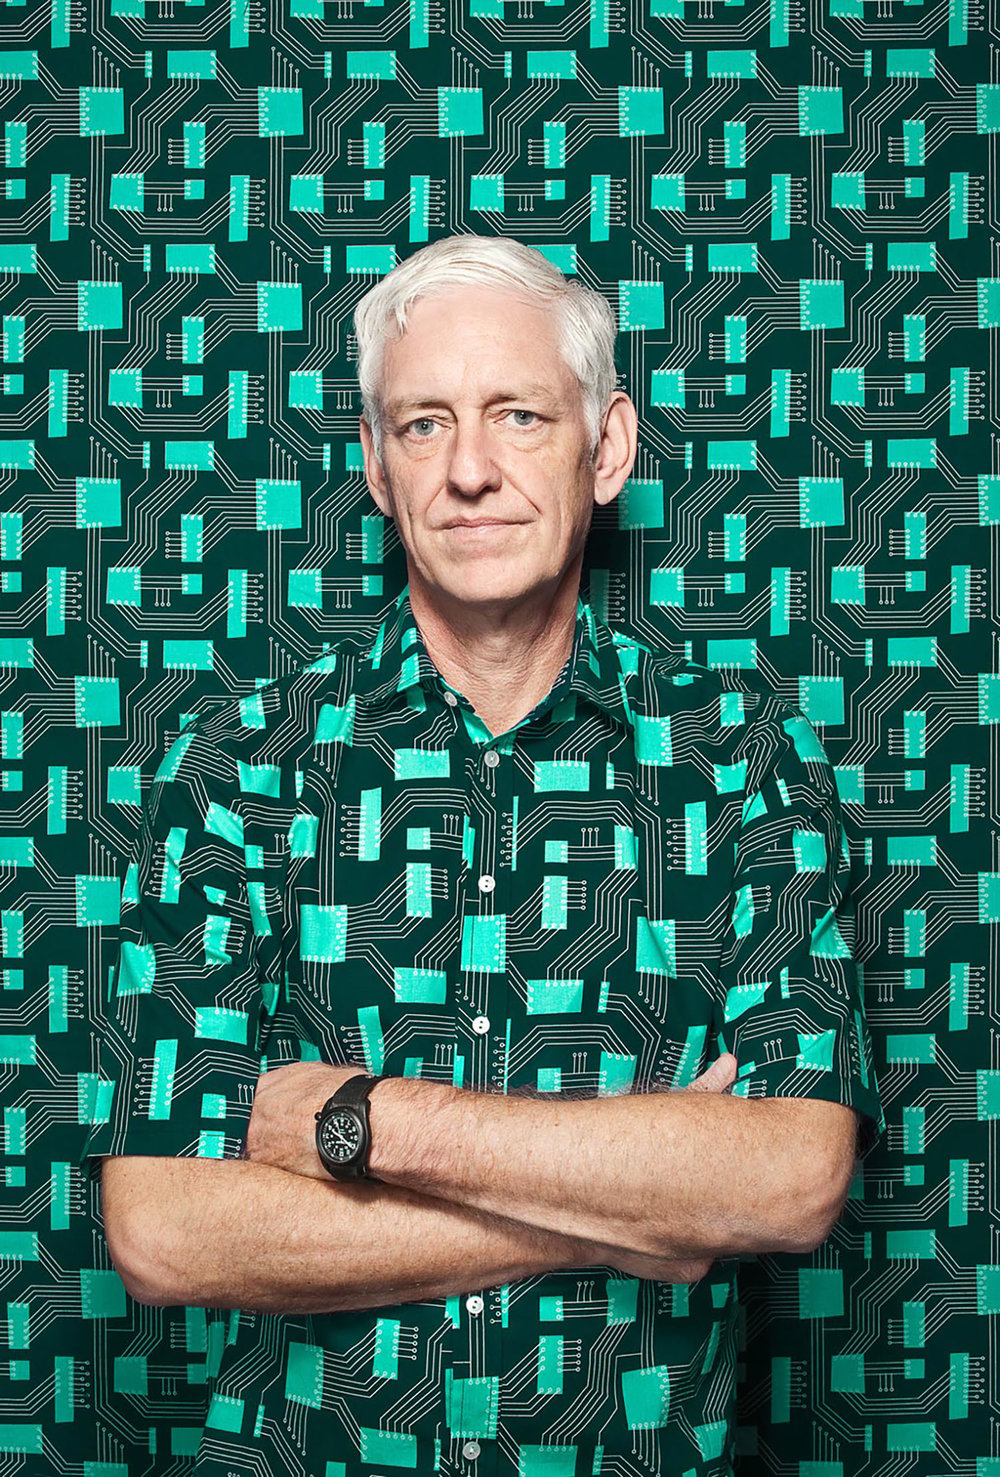 Peter Norvig, Director of Research at Google